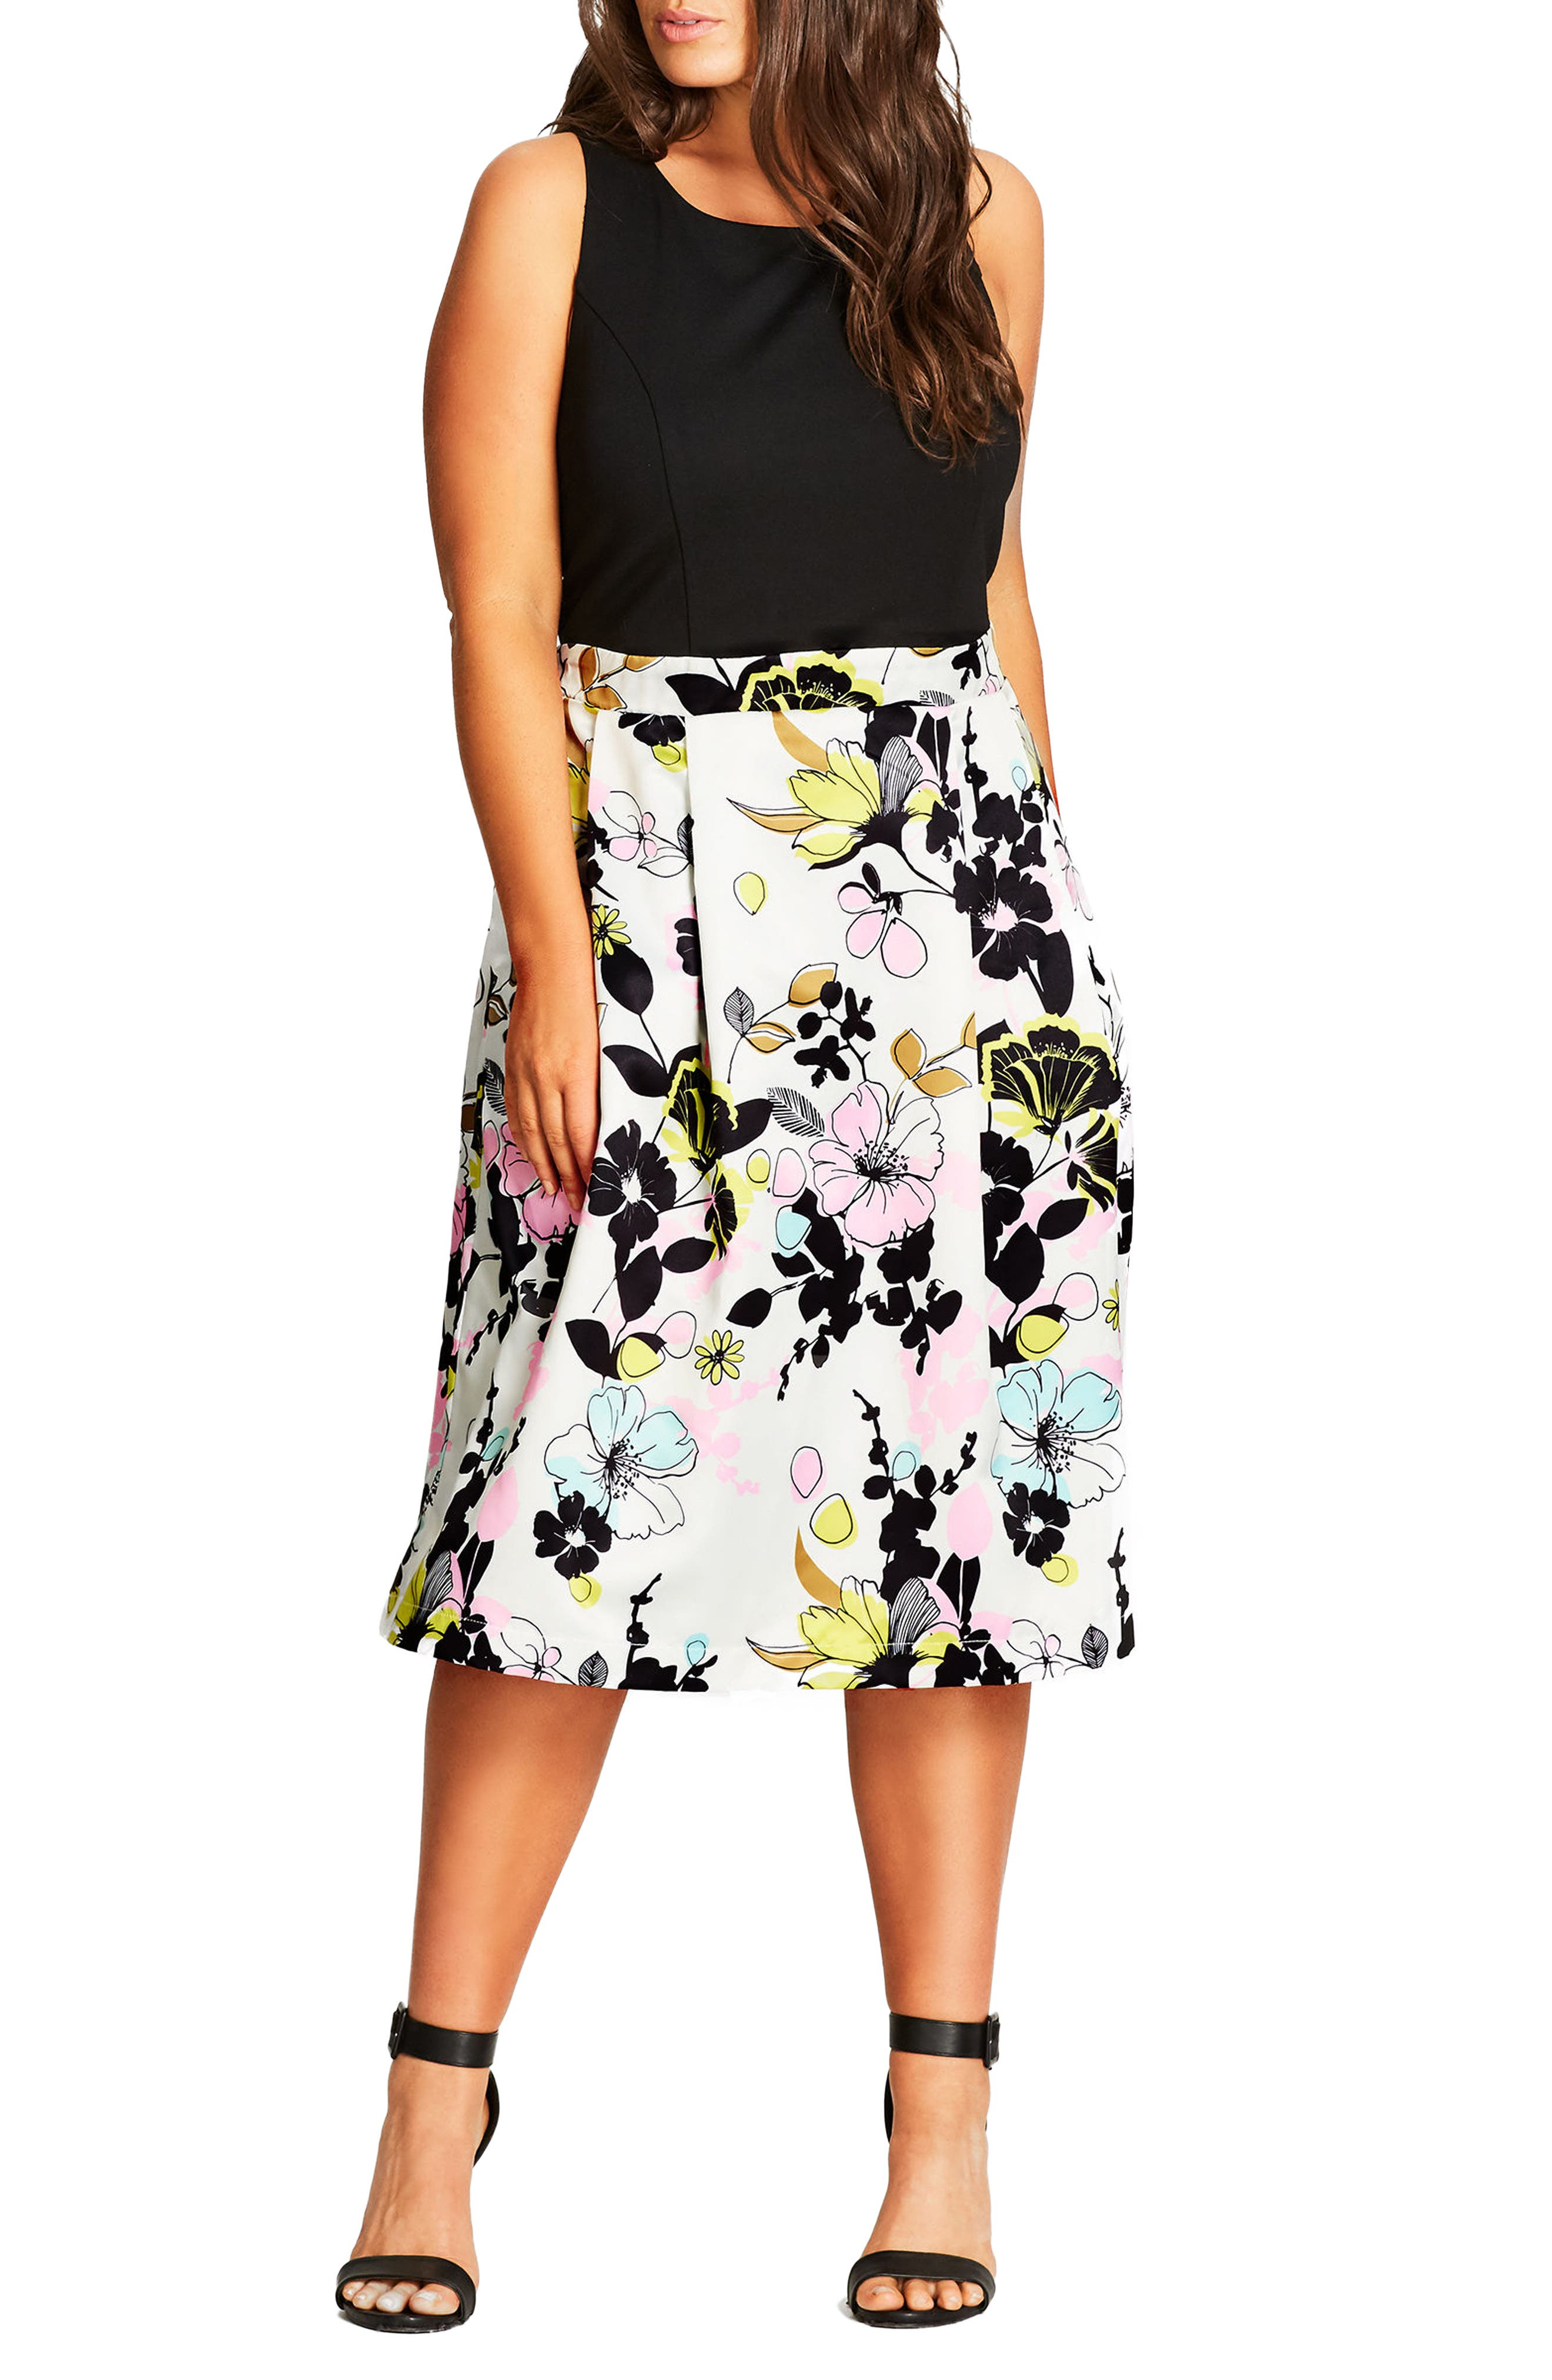 City Chic Art Darling Fit & Flare Dress (Plus Size)